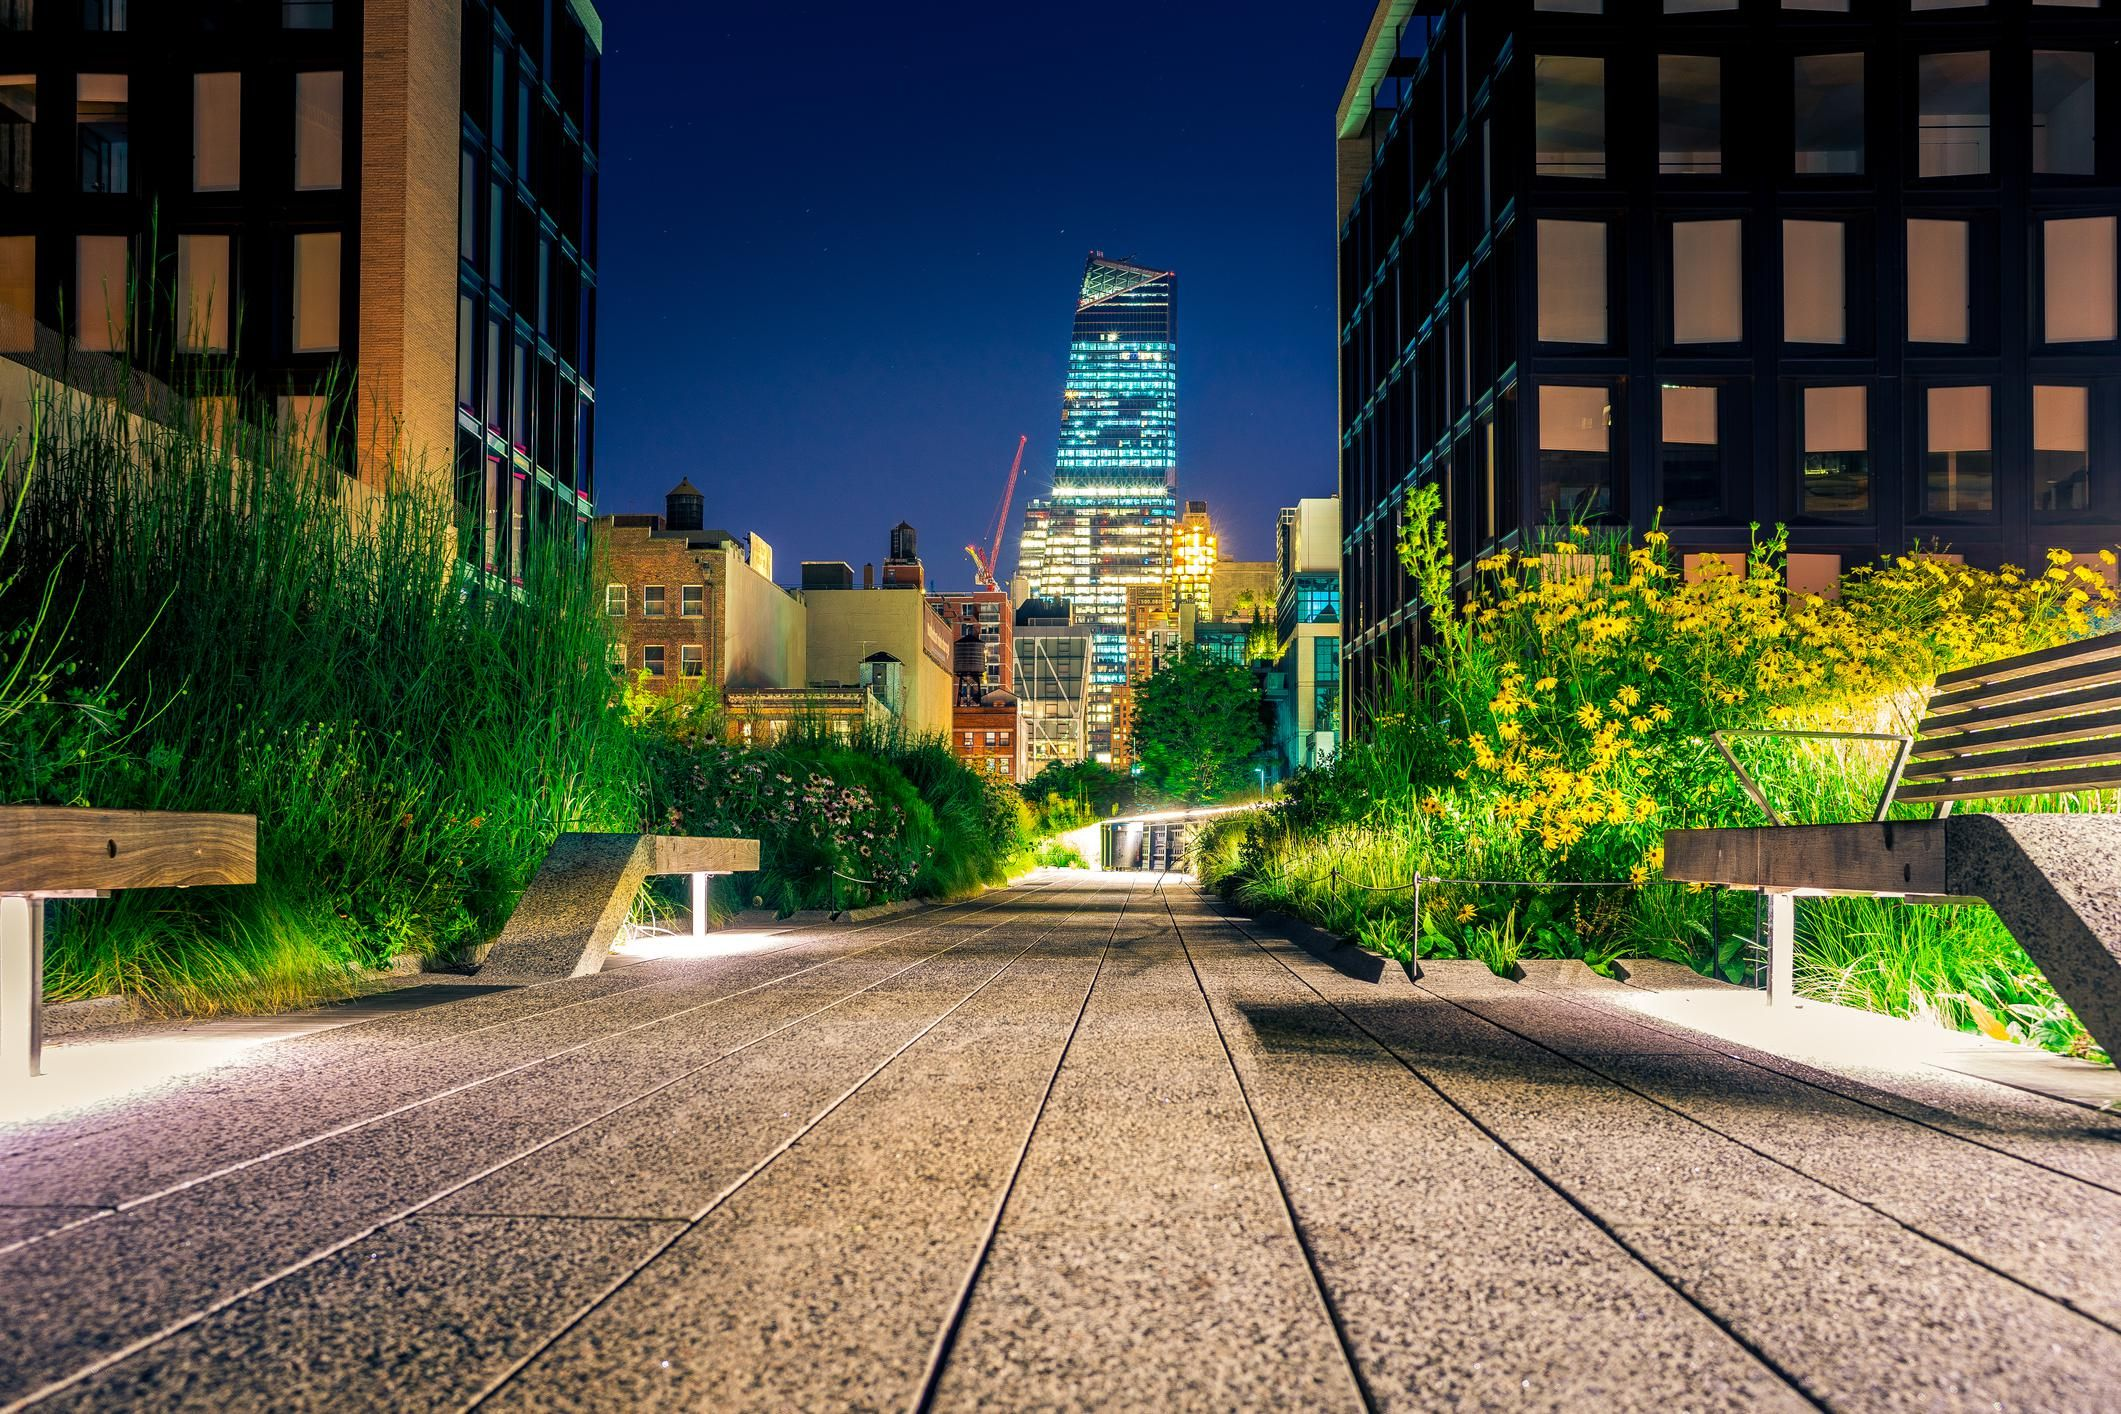 Landscaped walkway with an evening view of lighted office buildings